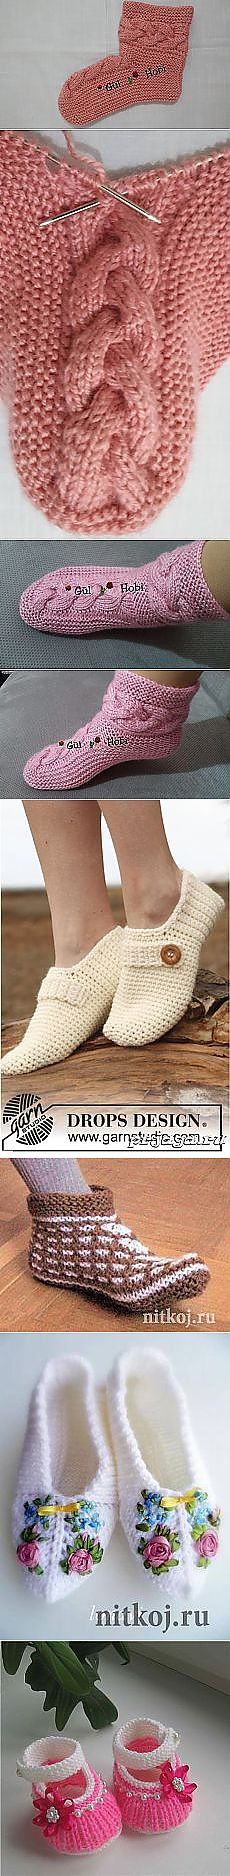 Search on Postila: socks and knitted footwear